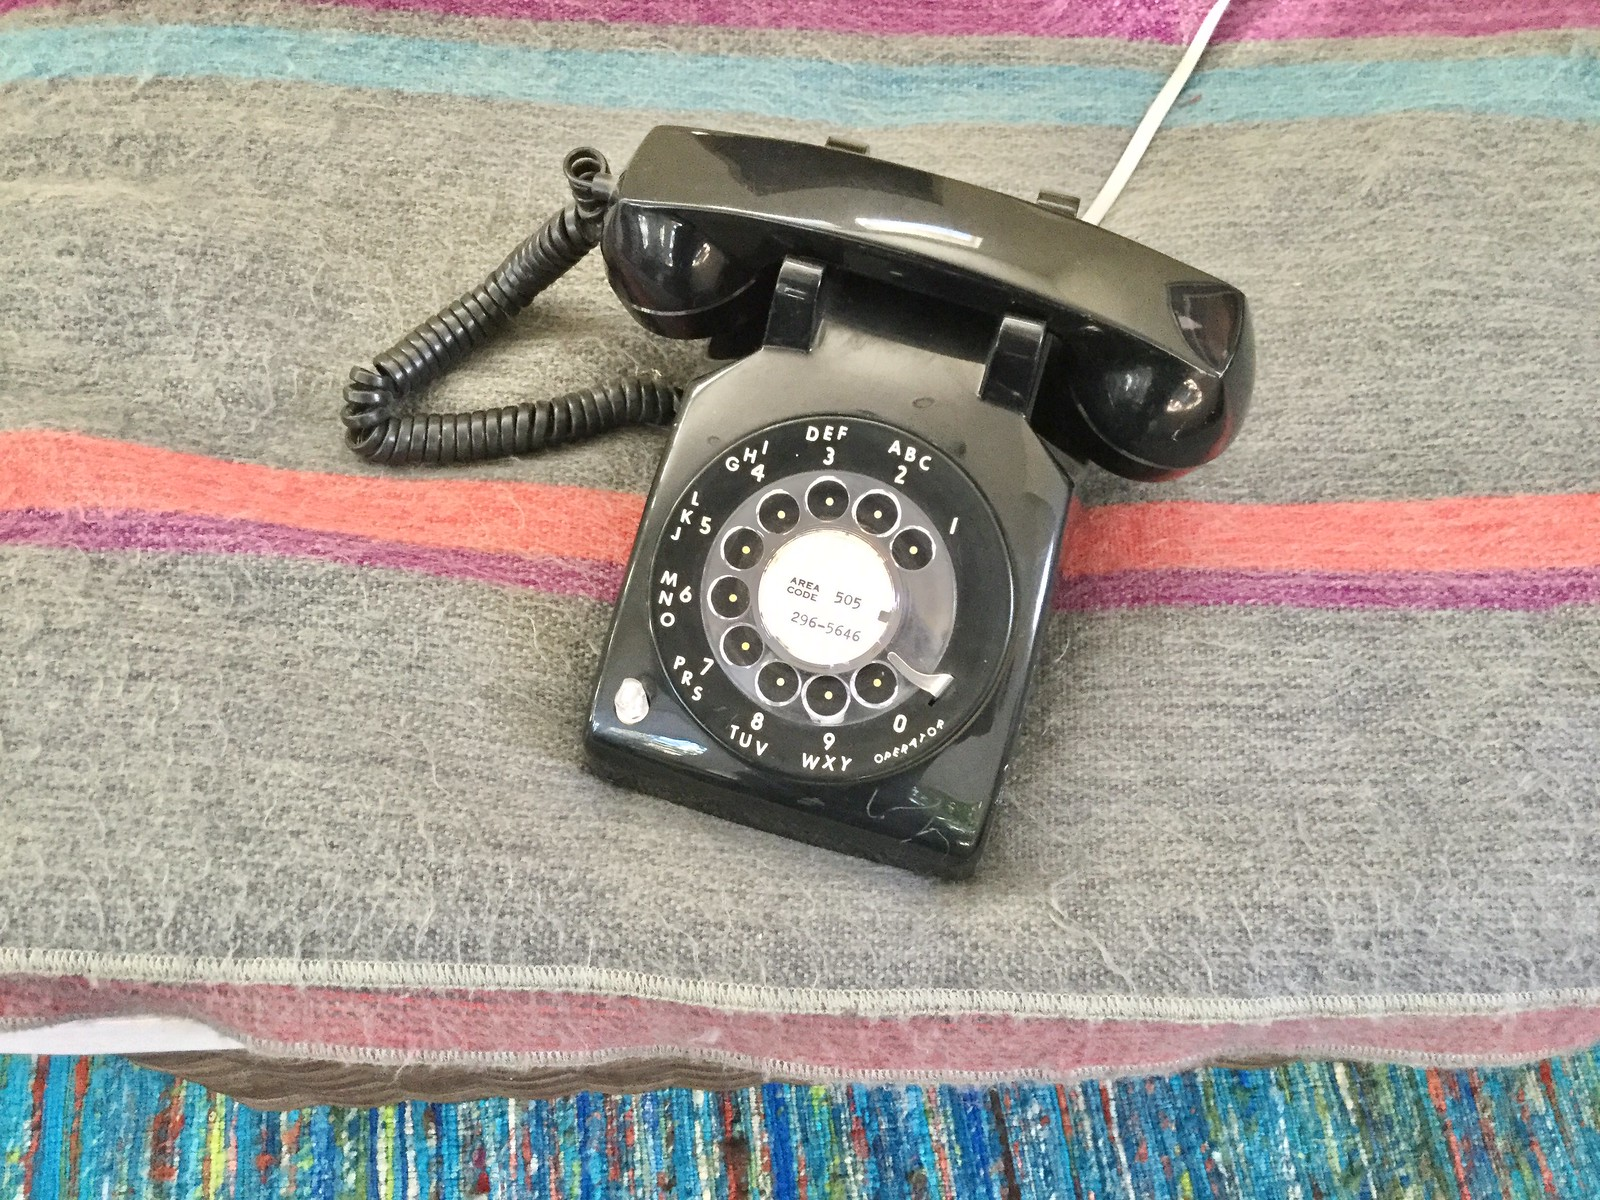 New-in-Box Western Electric Dial Telephone